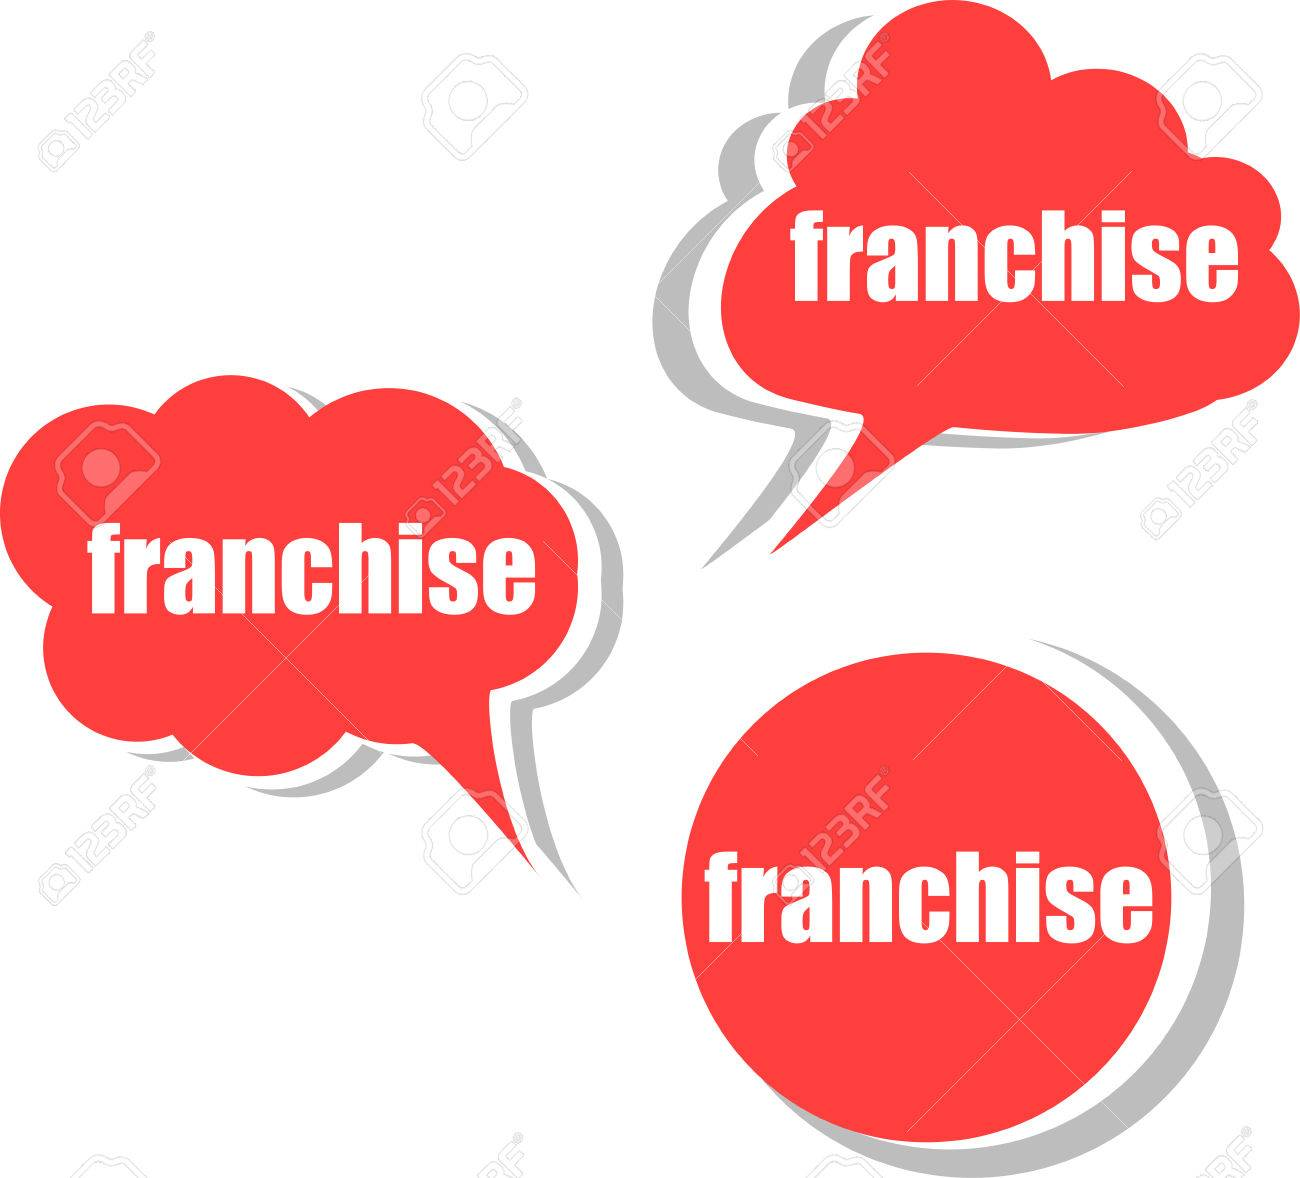 franchise set of stickers labels tags template for infographics